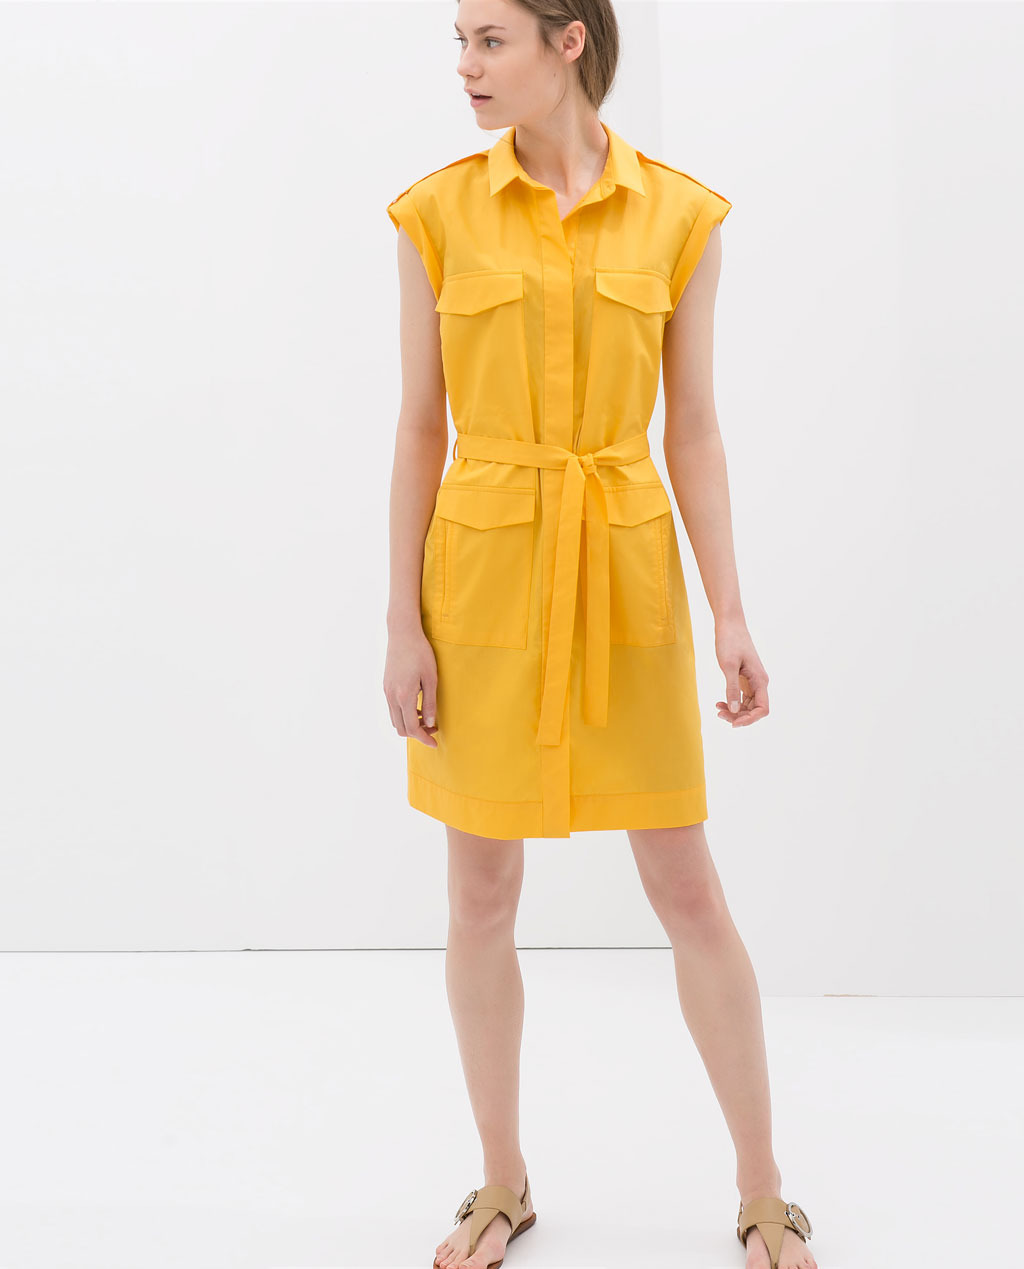 Poplin Dress With Belt - style: shirt; neckline: shirt collar/peter pan/zip with opening; sleeve style: capped; pattern: plain; hip detail: front pockets at hip; bust detail: pocket detail at bust; waist detail: belted waist/tie at waist/drawstring; predominant colour: mustard; occasions: casual, holiday, creative work; length: just above the knee; fit: body skimming; fibres: cotton - 100%; sleeve length: short sleeve; texture group: cotton feel fabrics; trends: hot brights, world traveller; season: s/s 2014